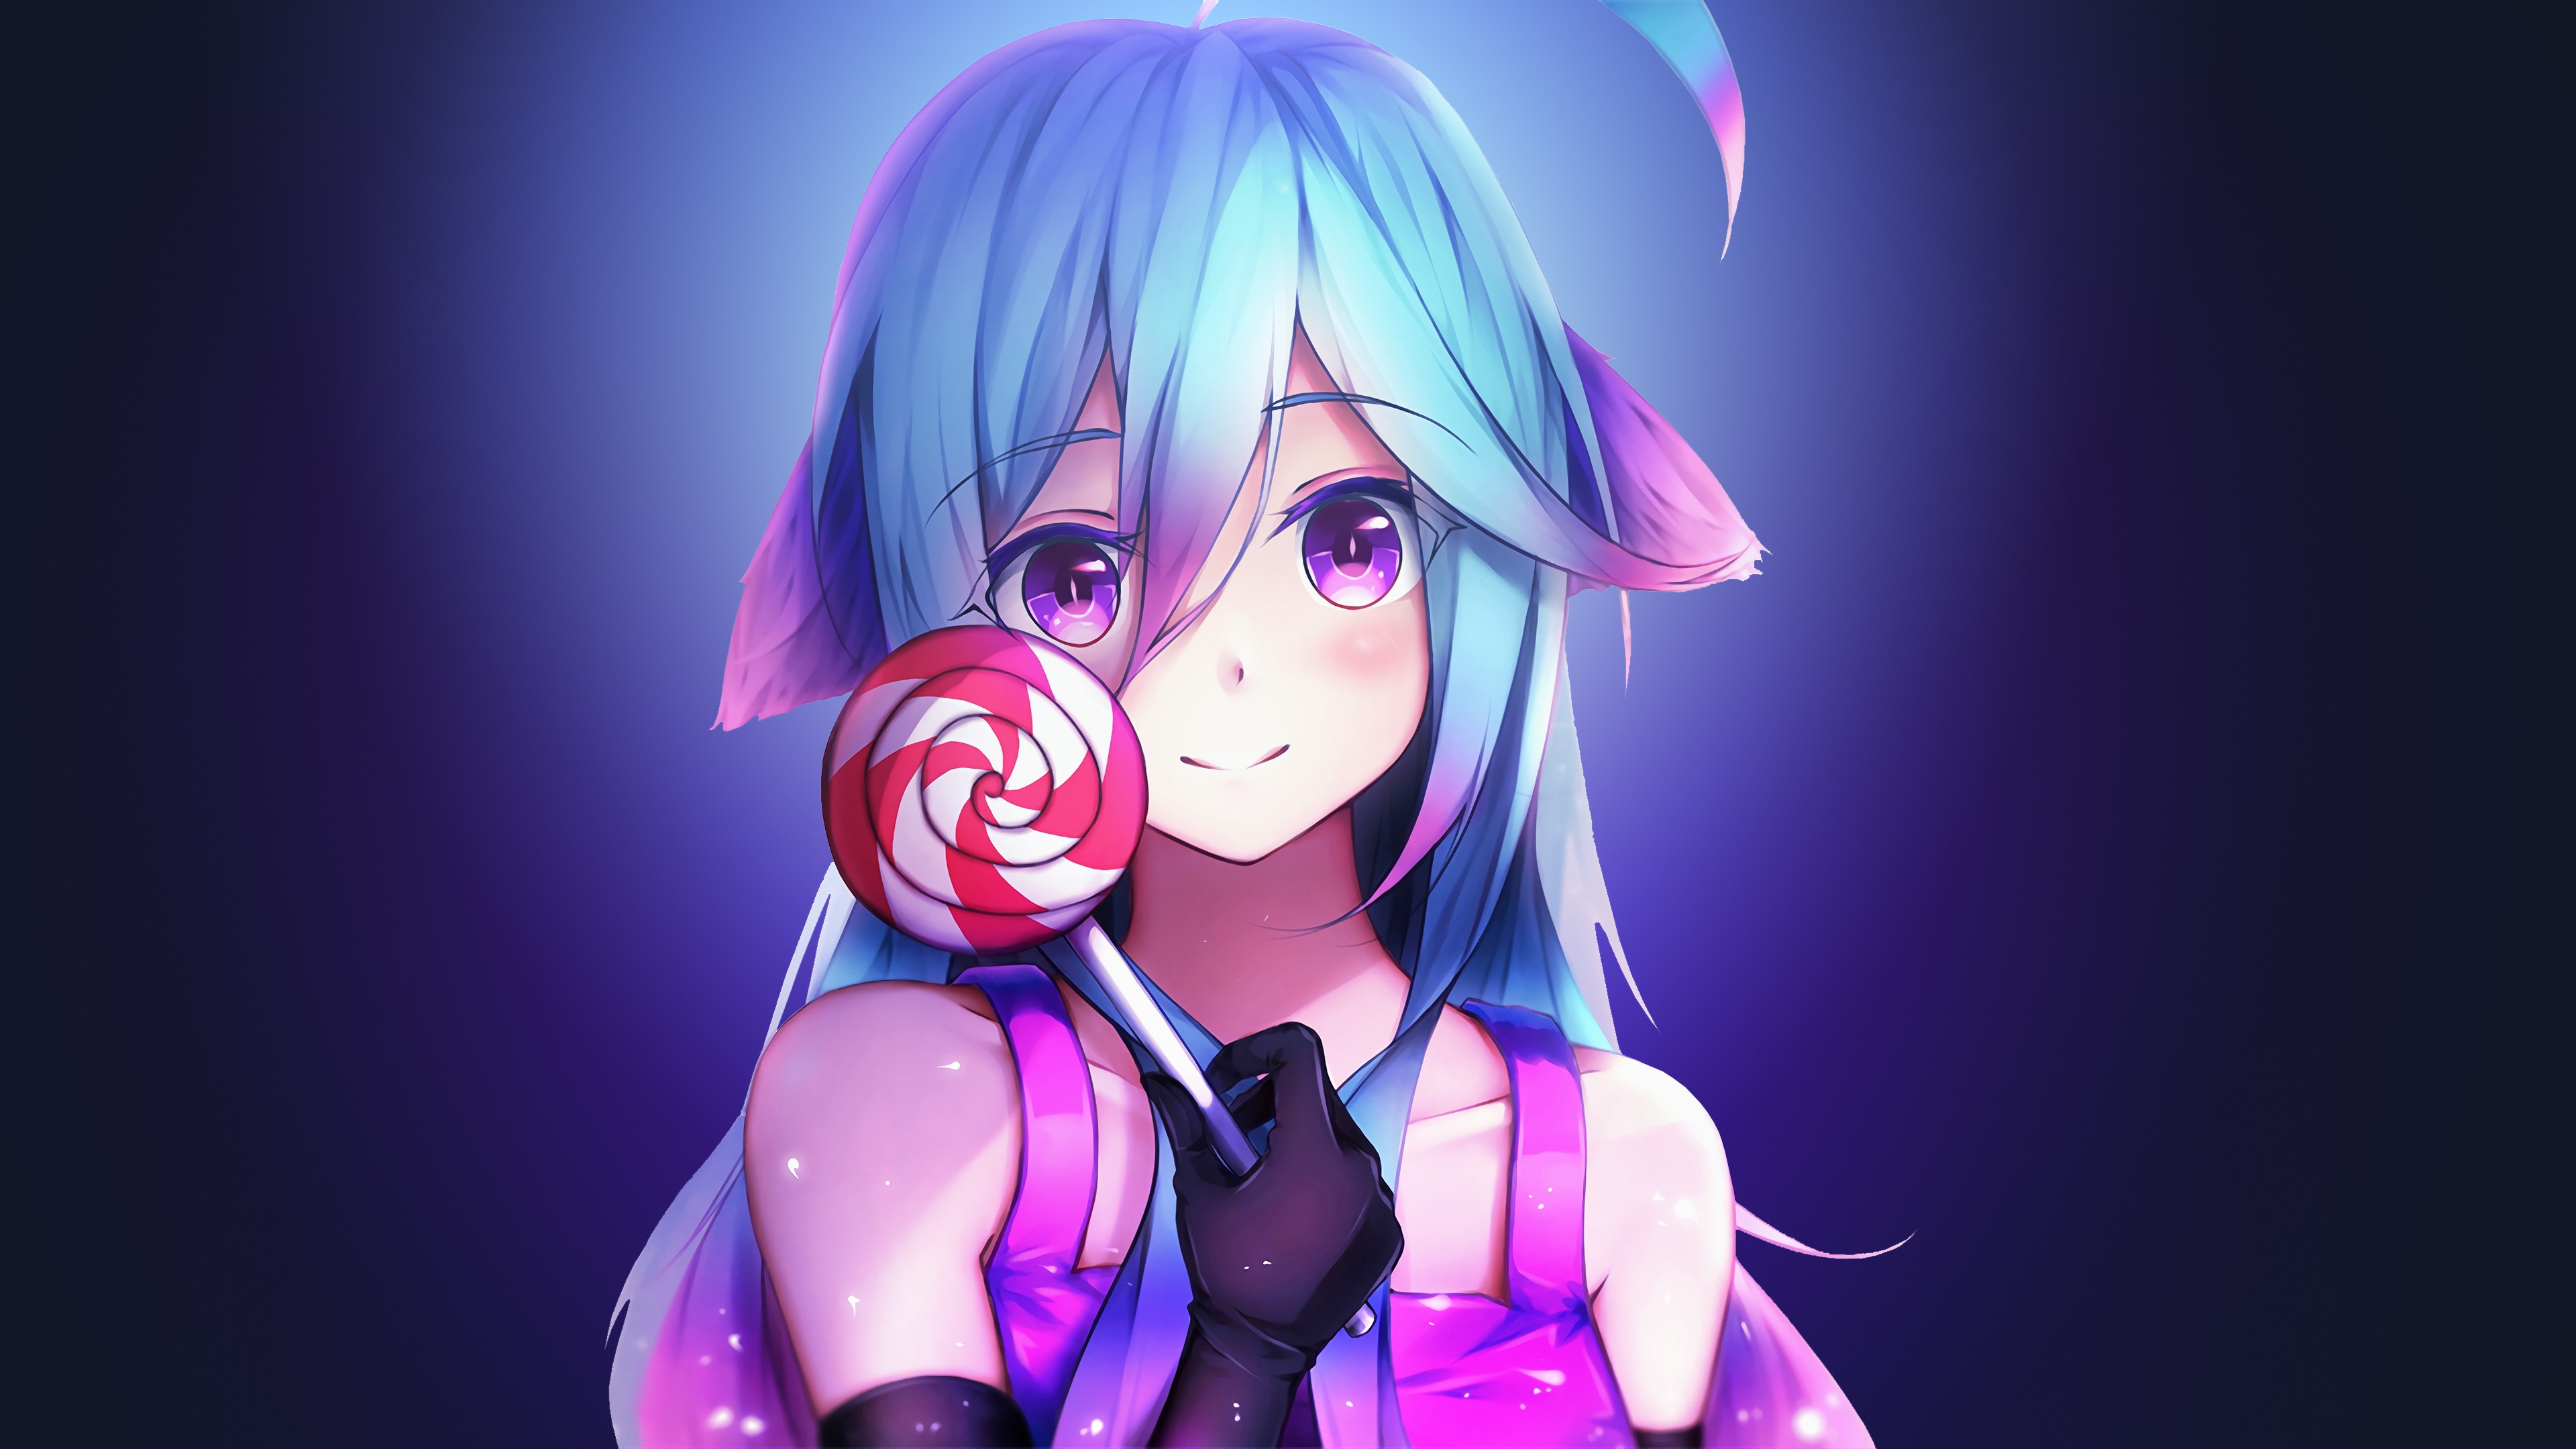 Anime girl cute rainbows and lolipop